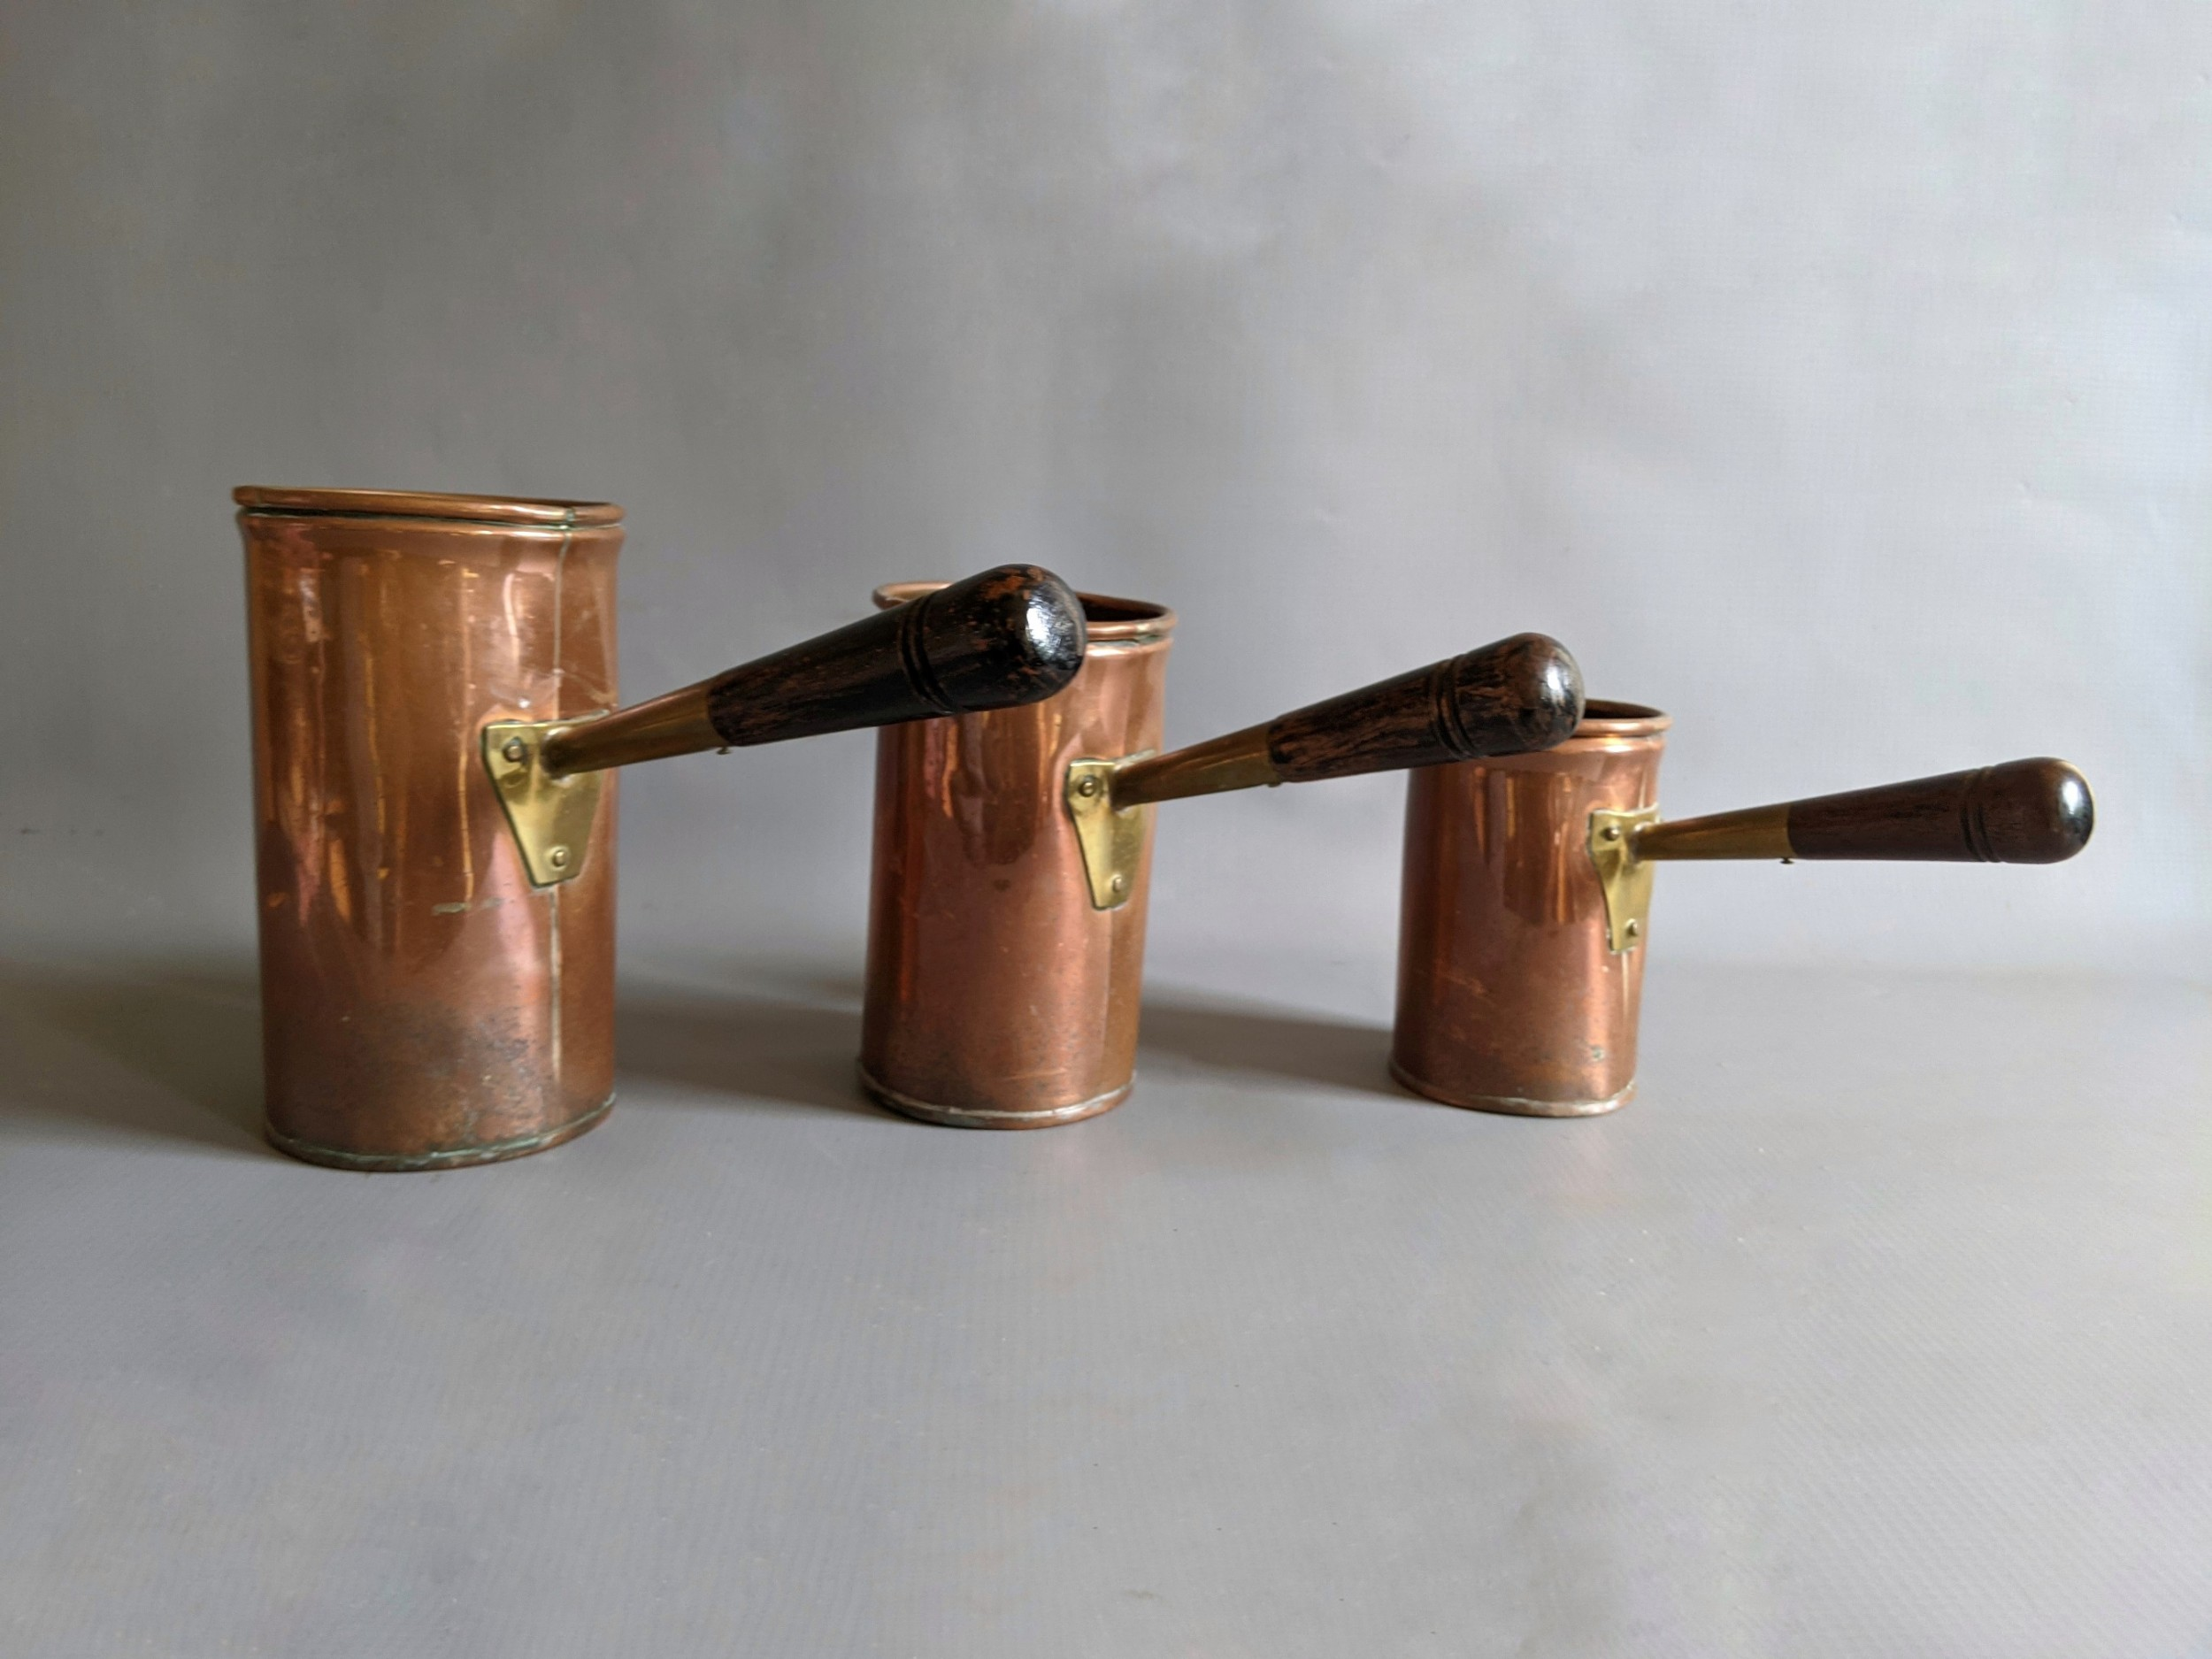 19th century copper ale warmers set of 3